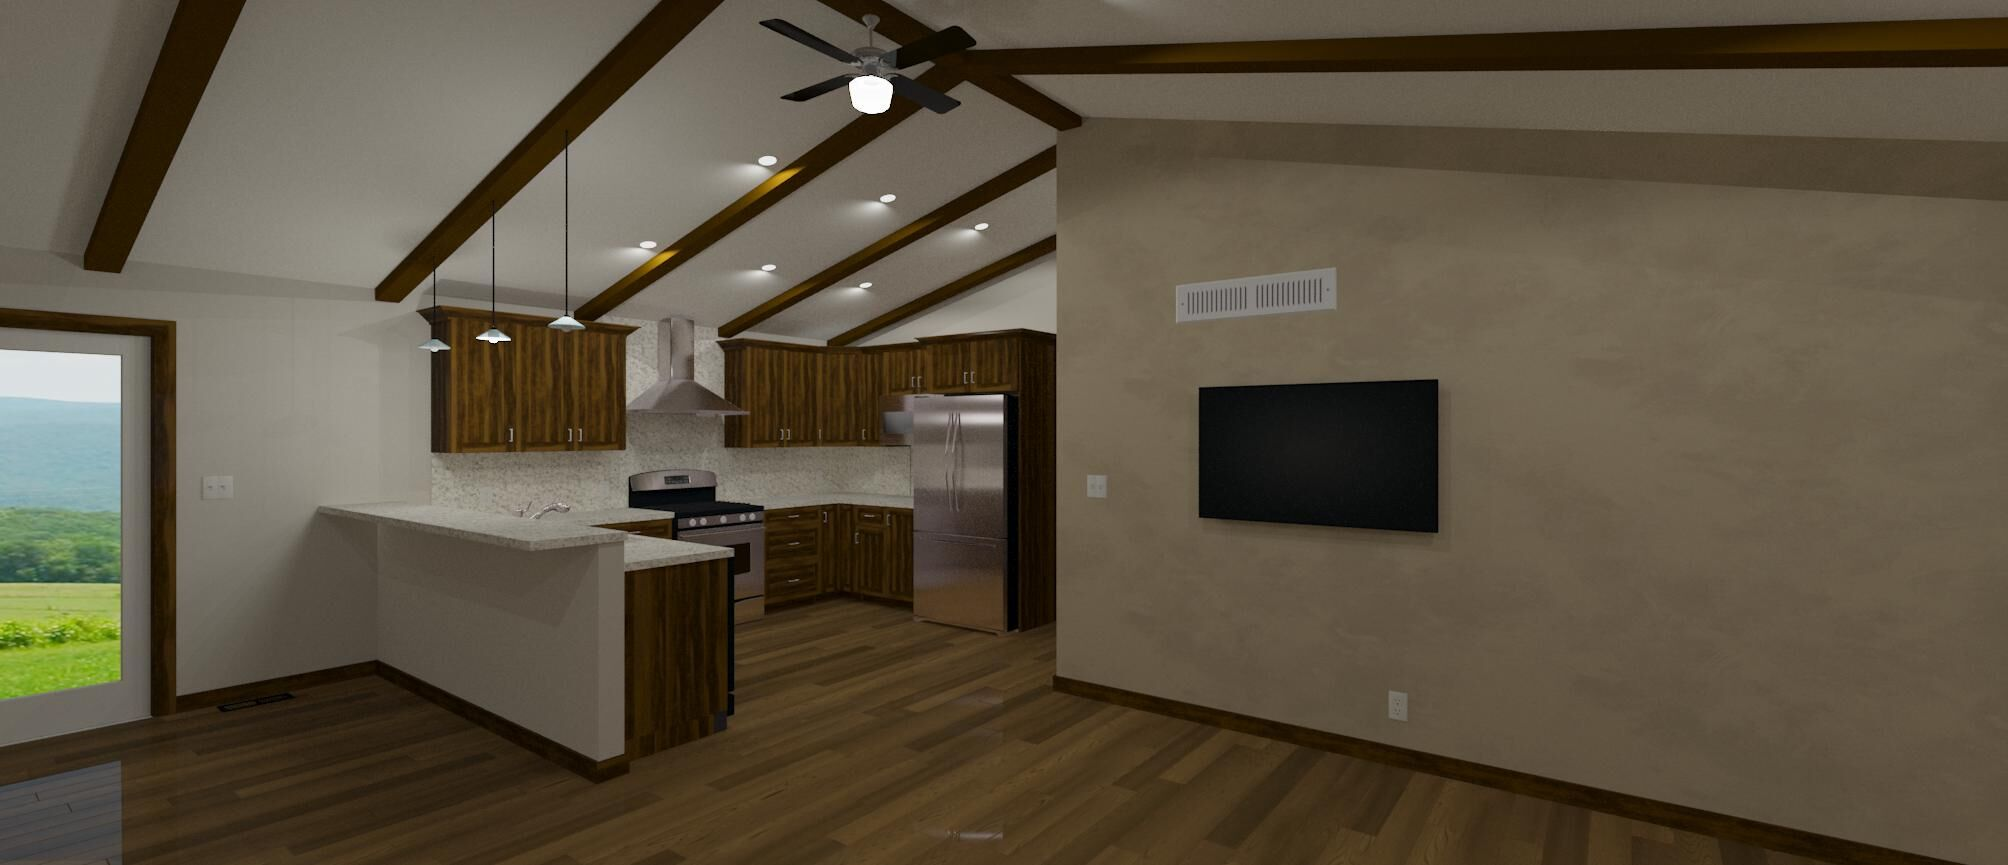 Whole Home Remodeling with Kitchen Design Trace